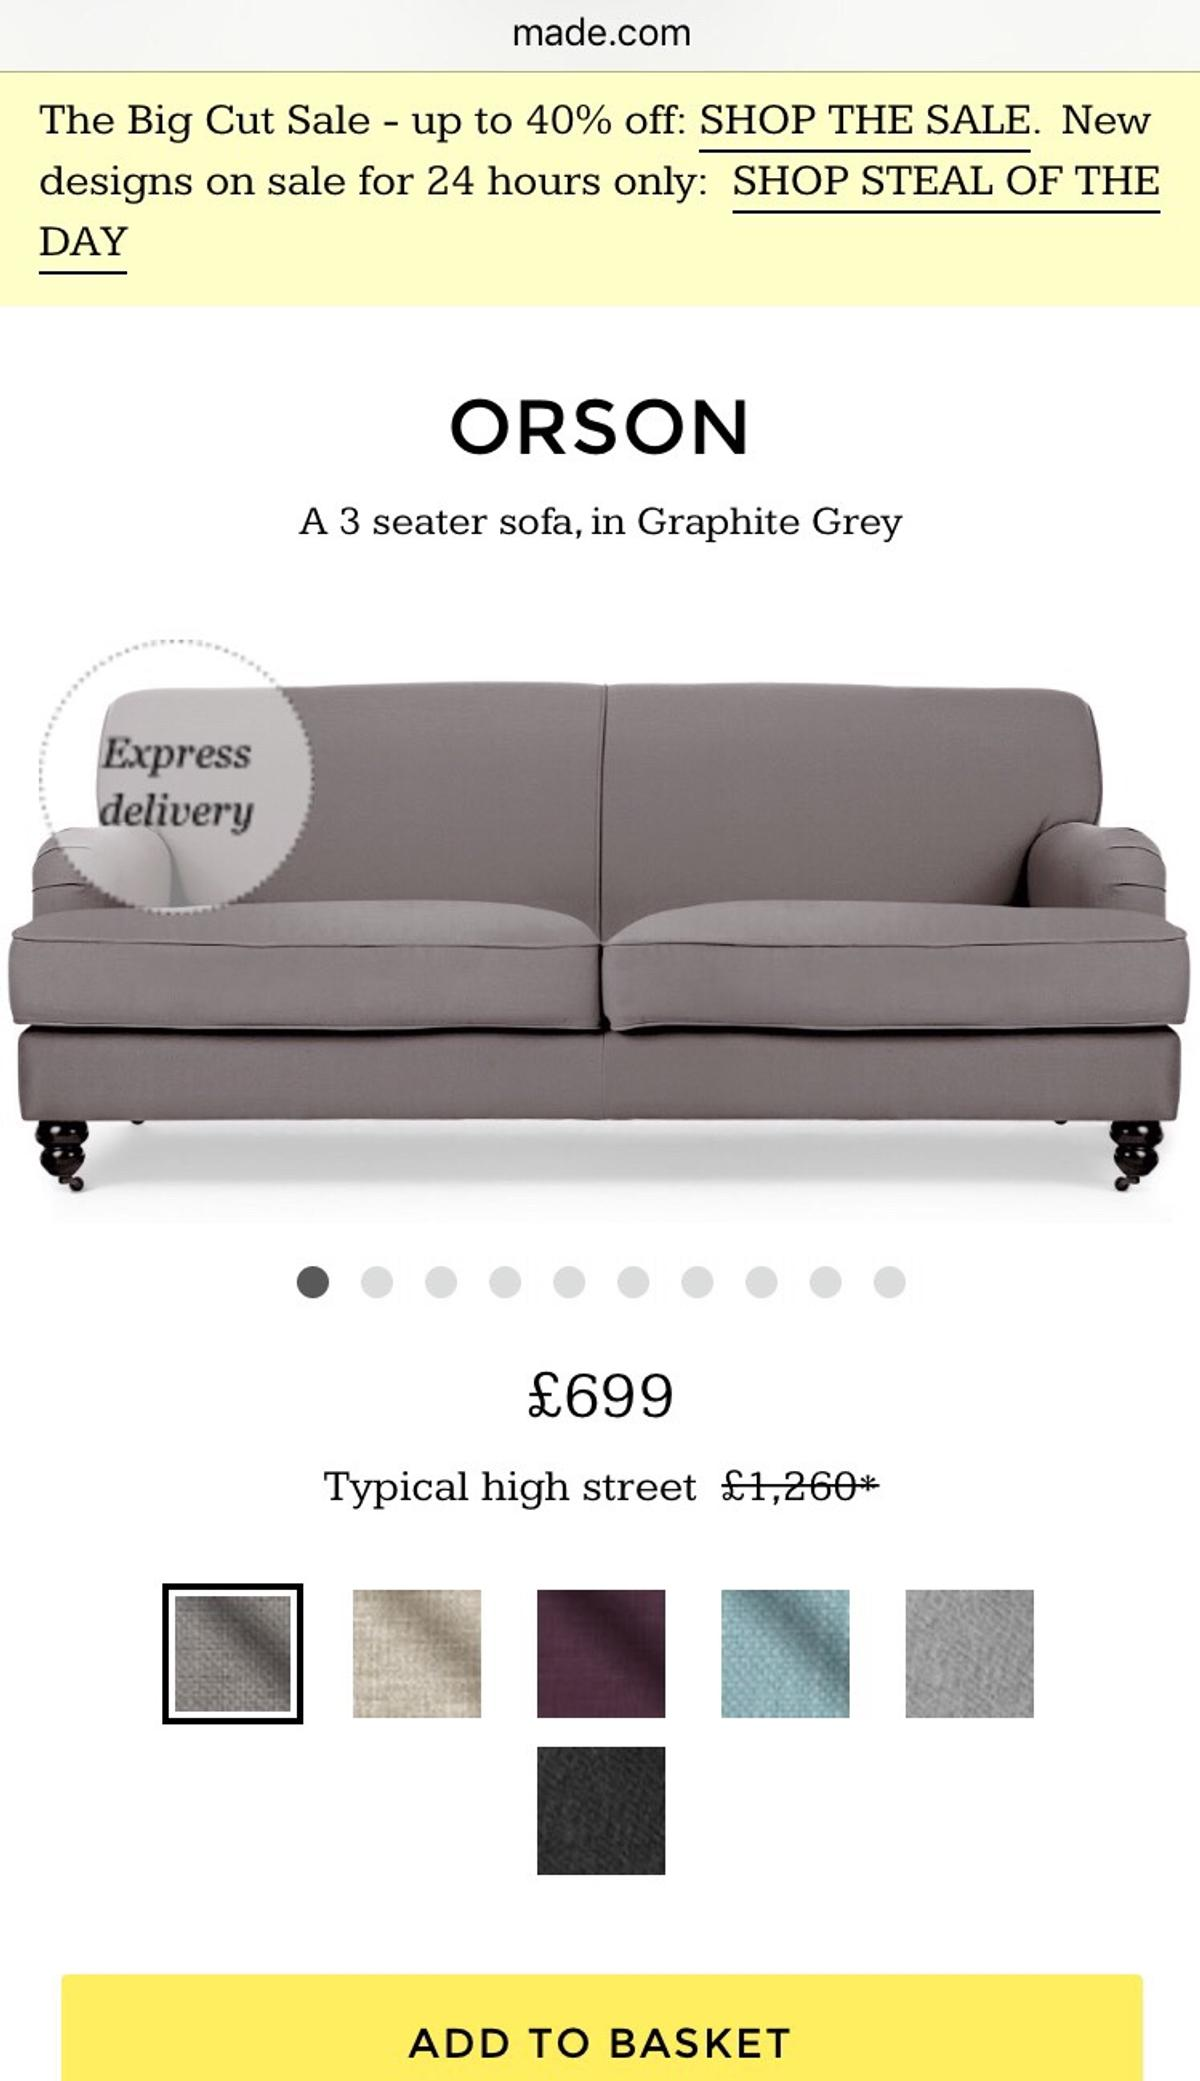 Made Sofa Shop Made Online Slate Grey Orson 3 Seater Sofa